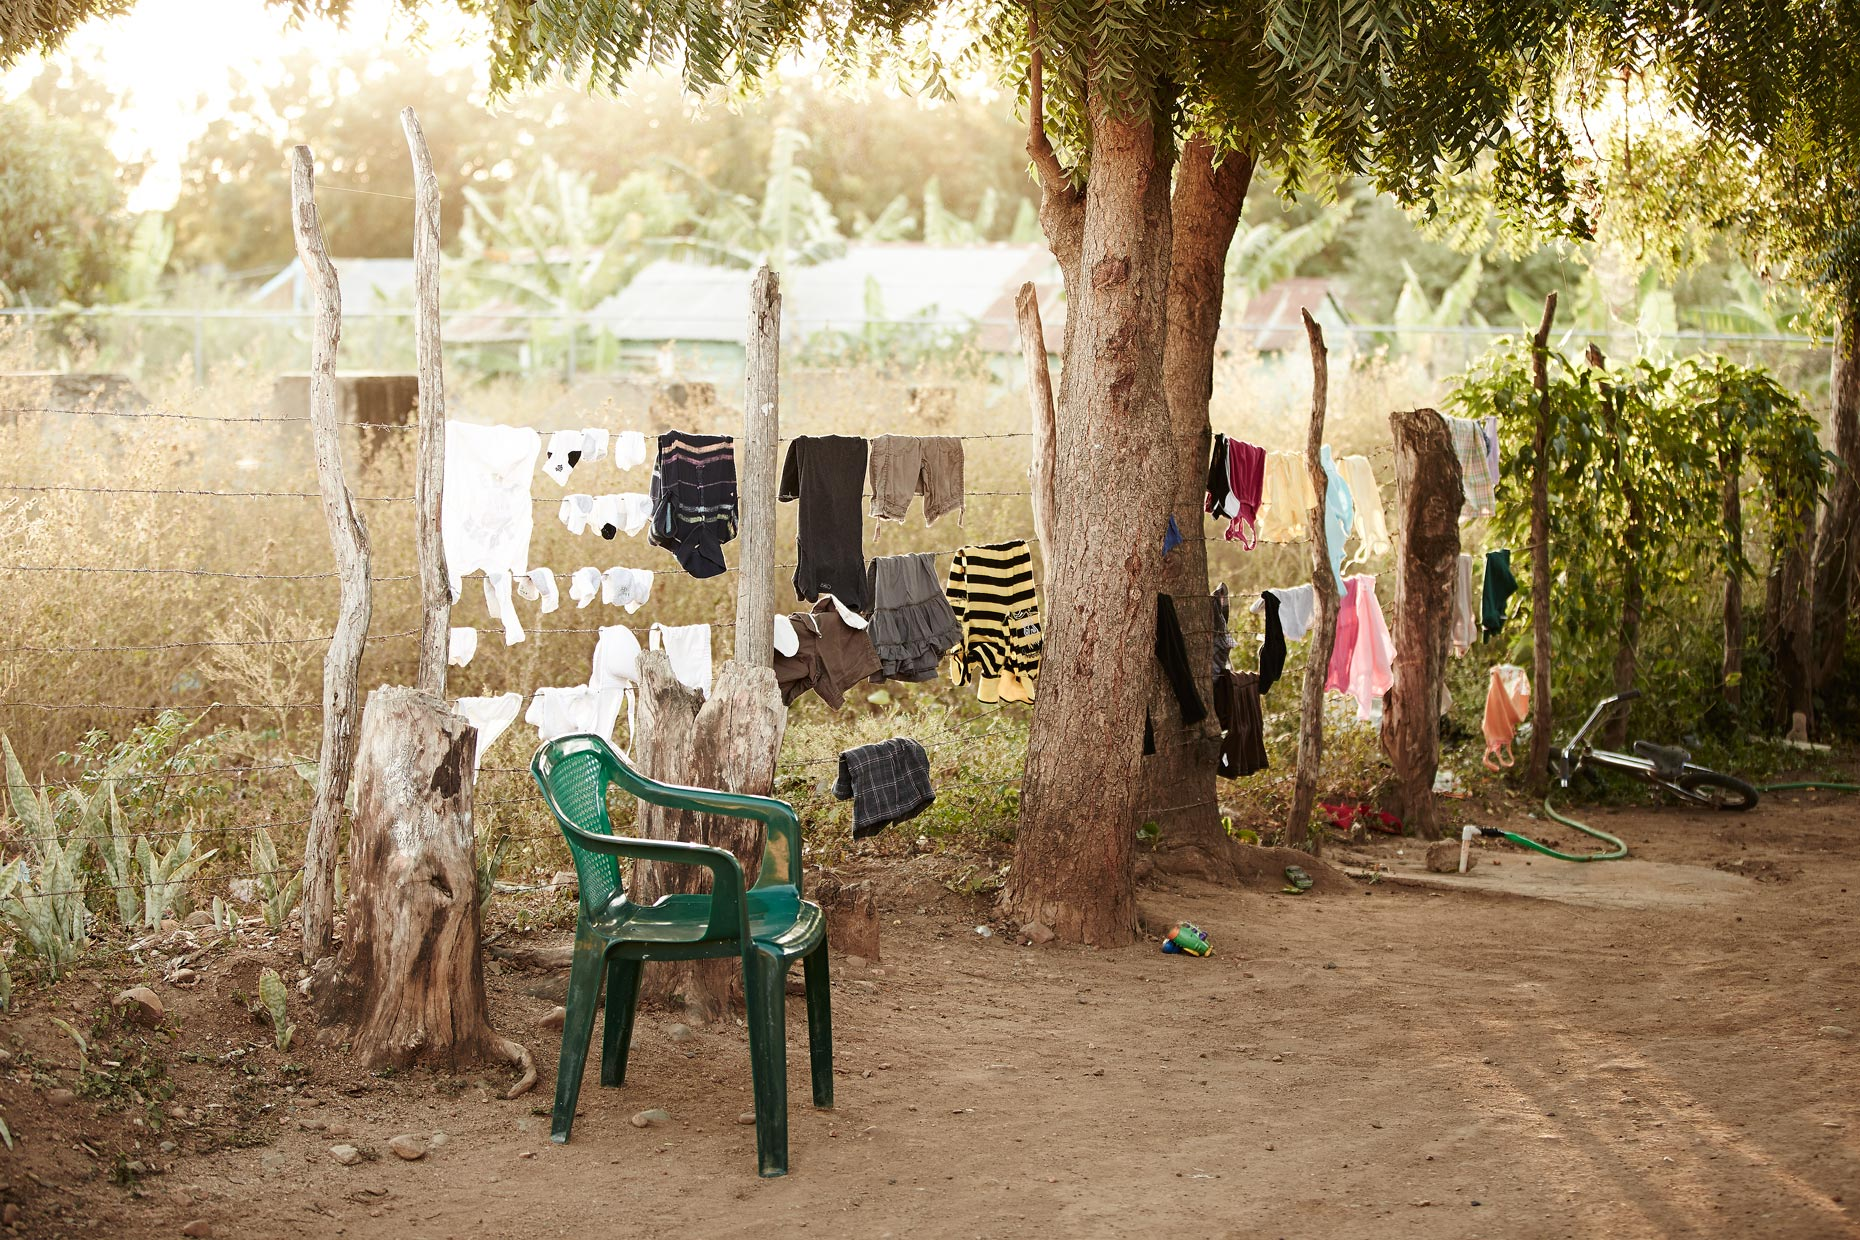 Travel Photography Dominican Republic Derek Israelsen Laundry